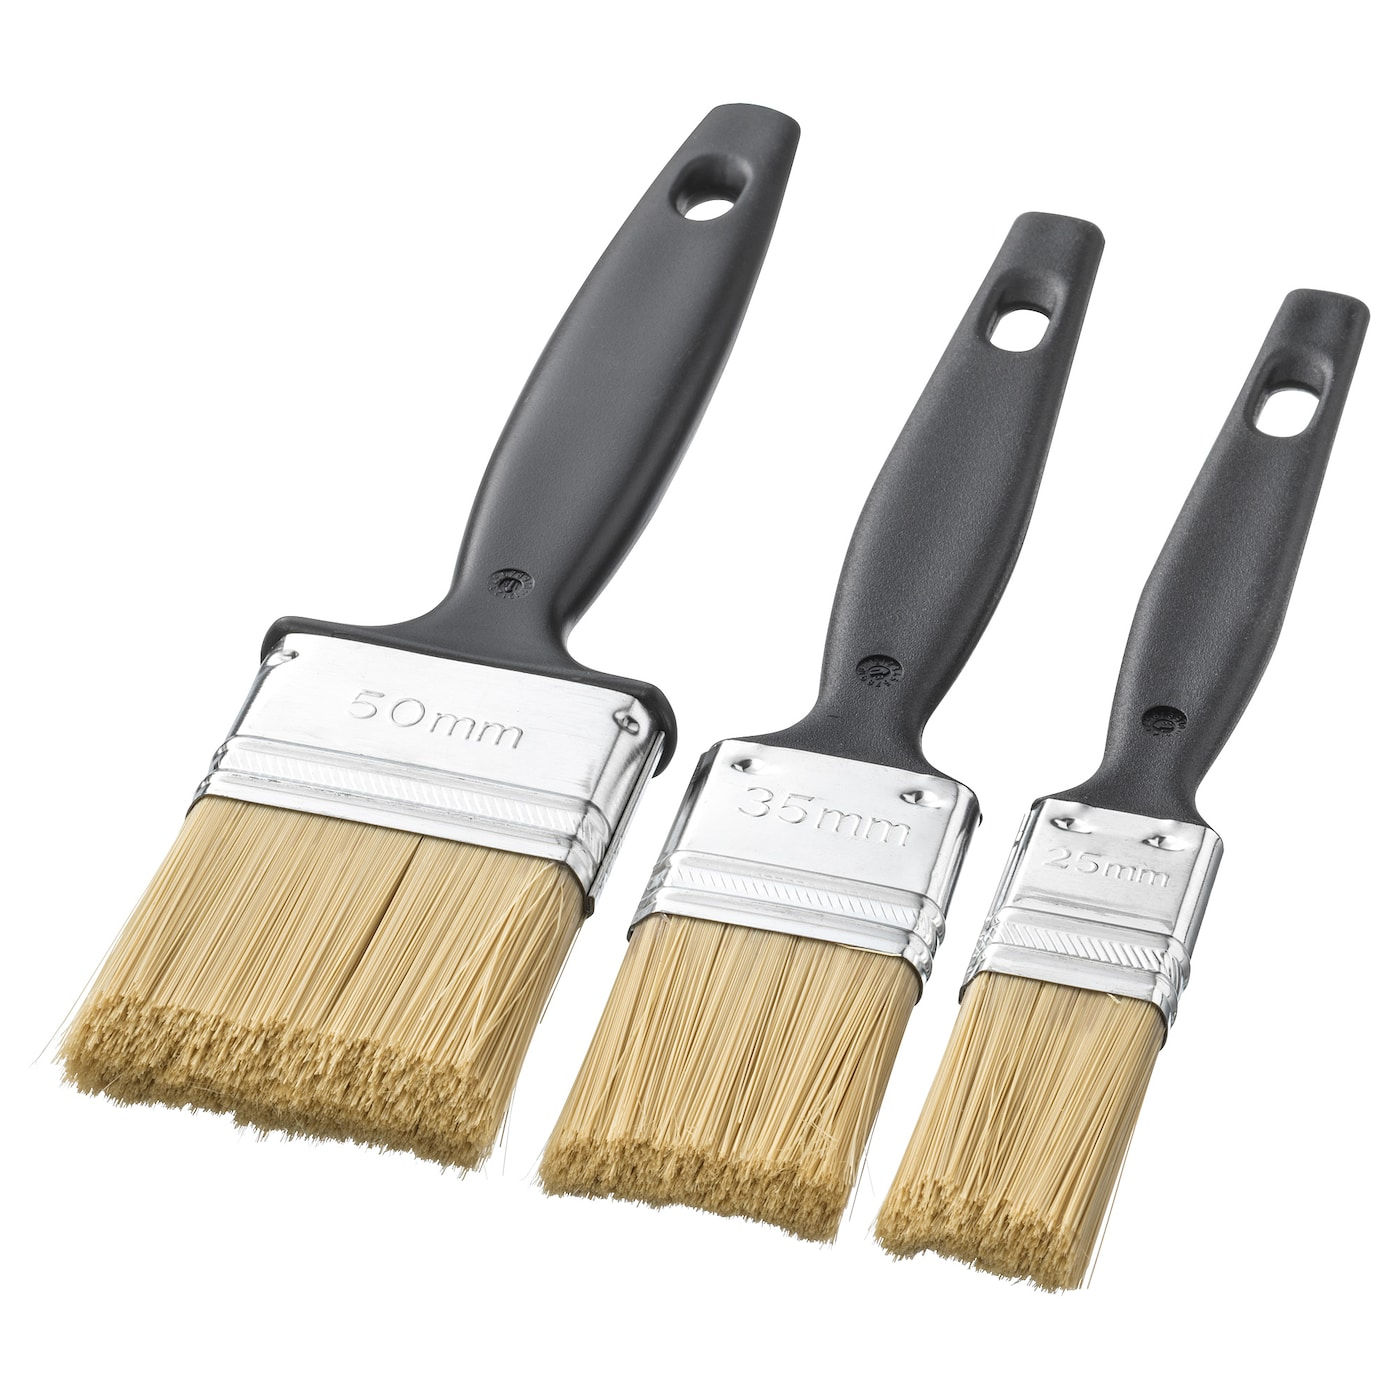 IKEA FIXA paint brush set You can use the brush for both water- and oil-based paint.